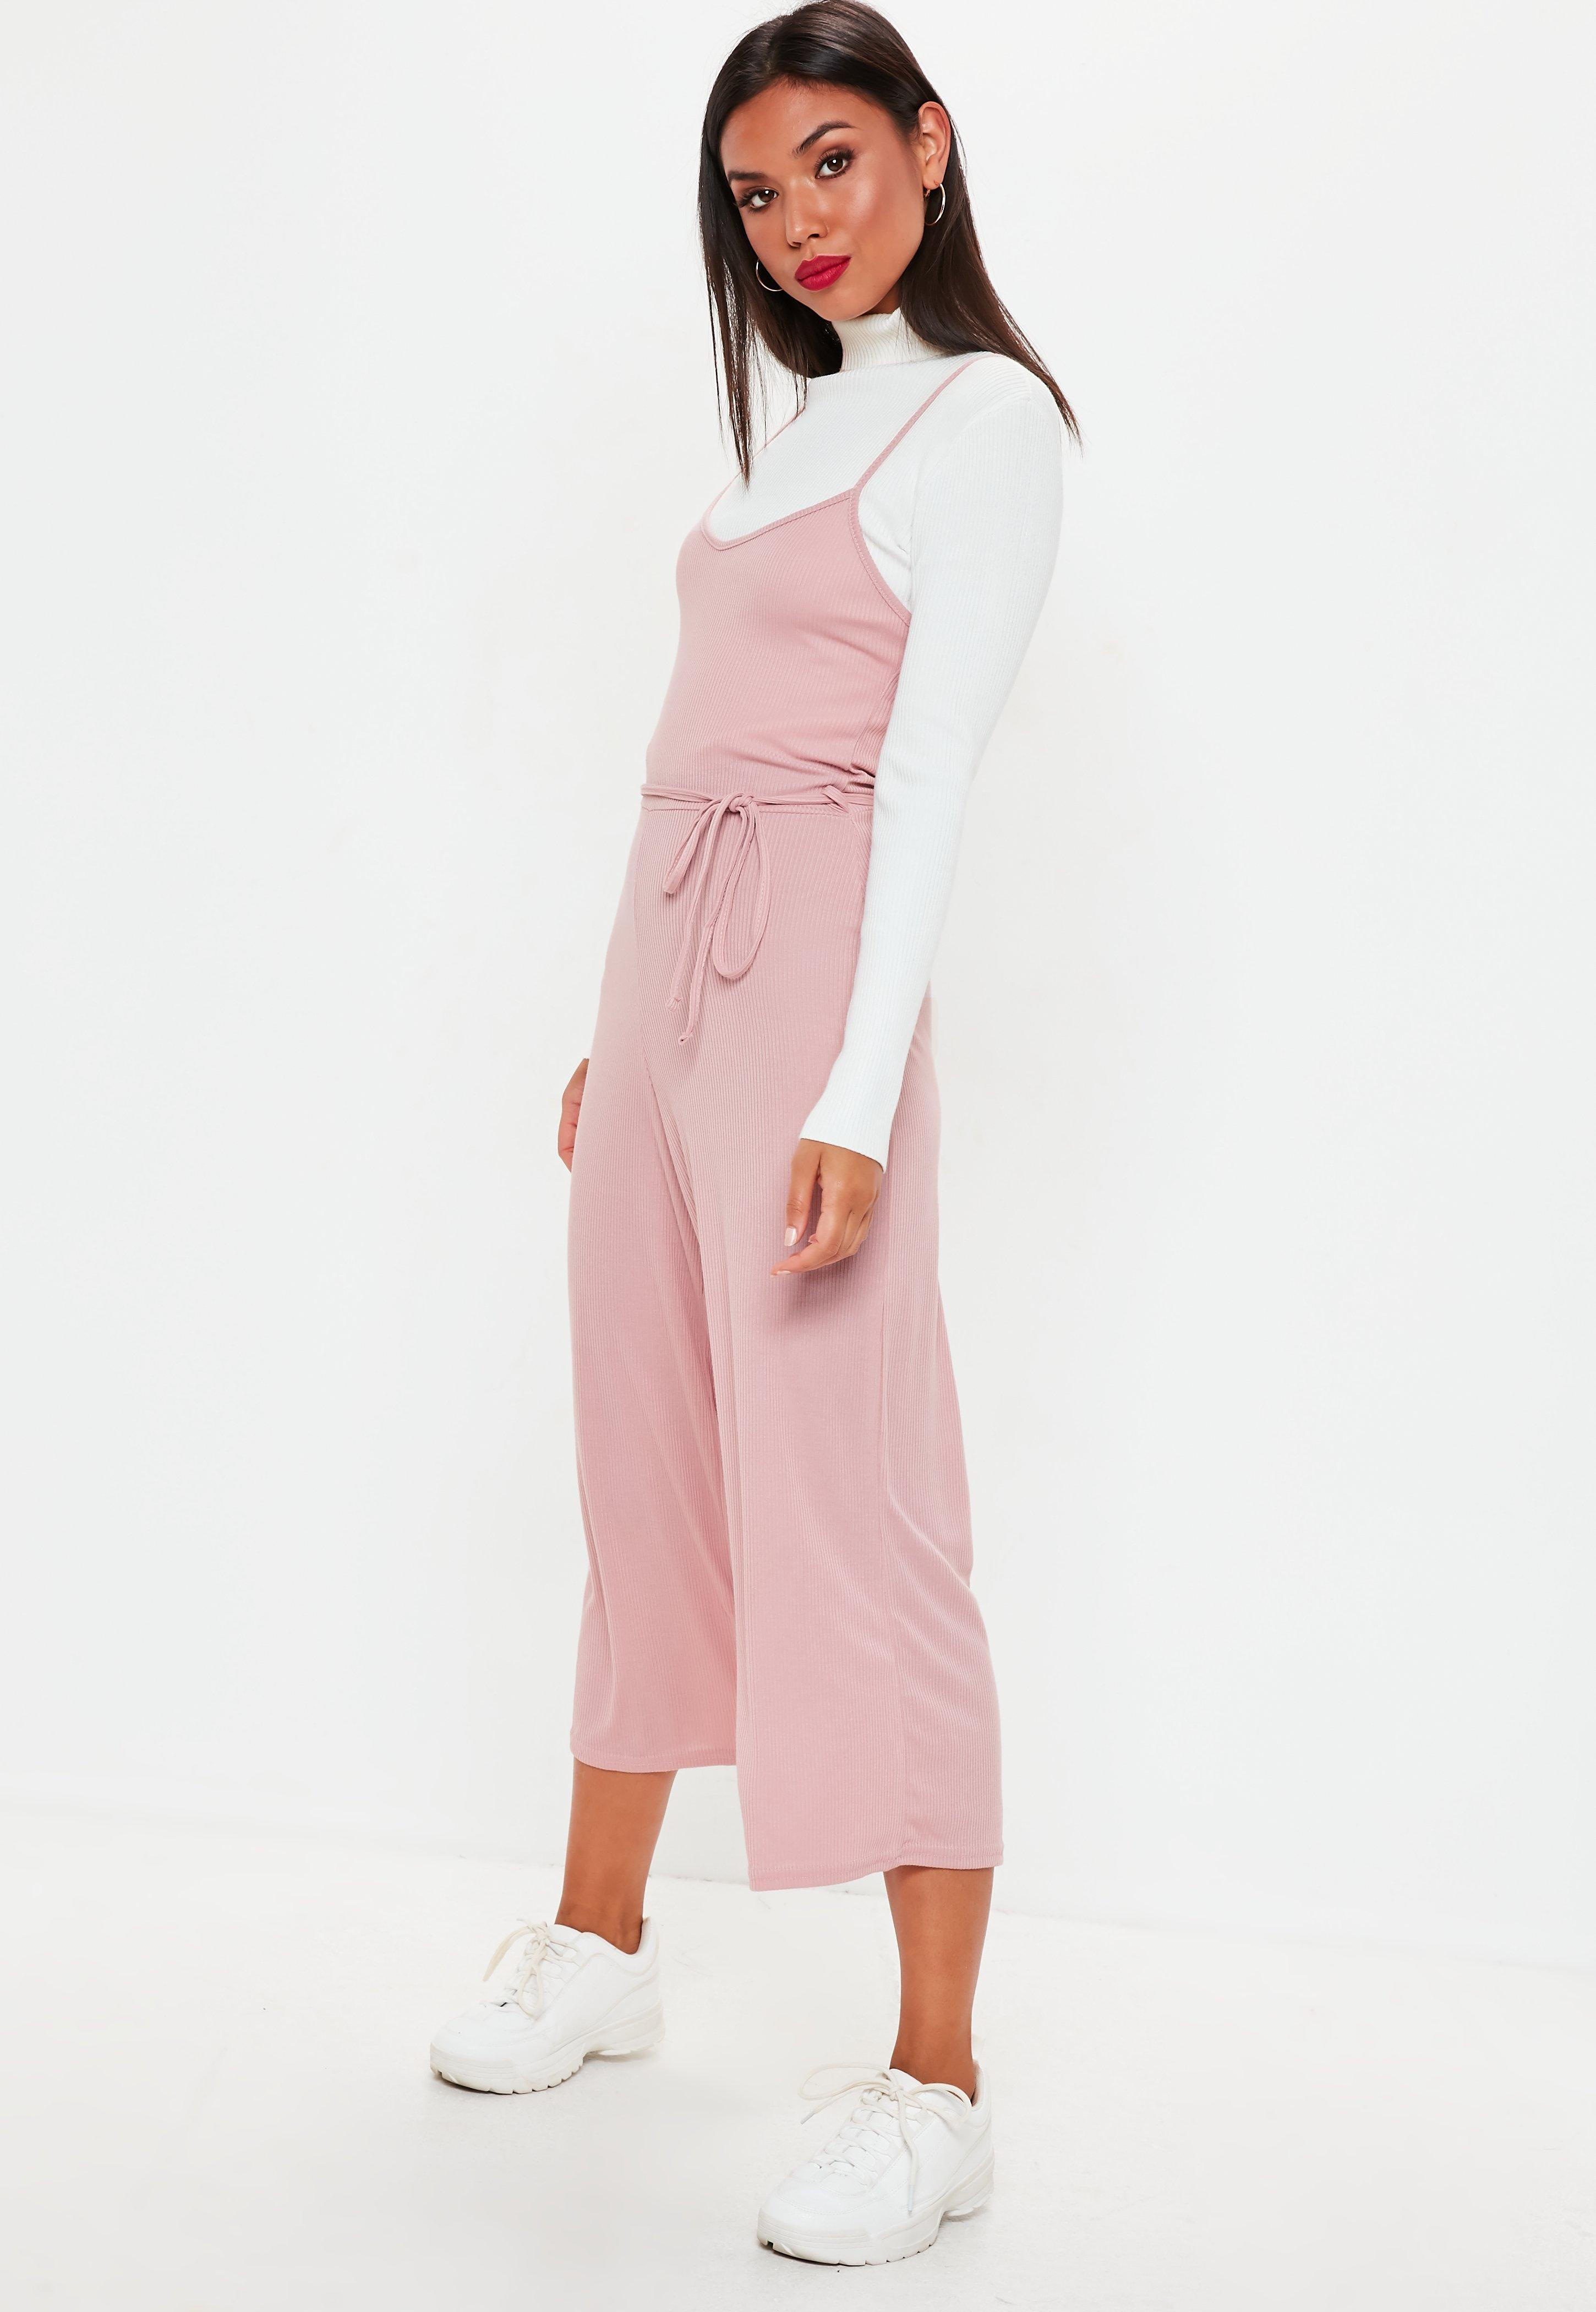 ccfe1dcc2c9f Lyst - Missguided Pink Rib Cami Culotte Jumpsuit in Pink - Save 27%